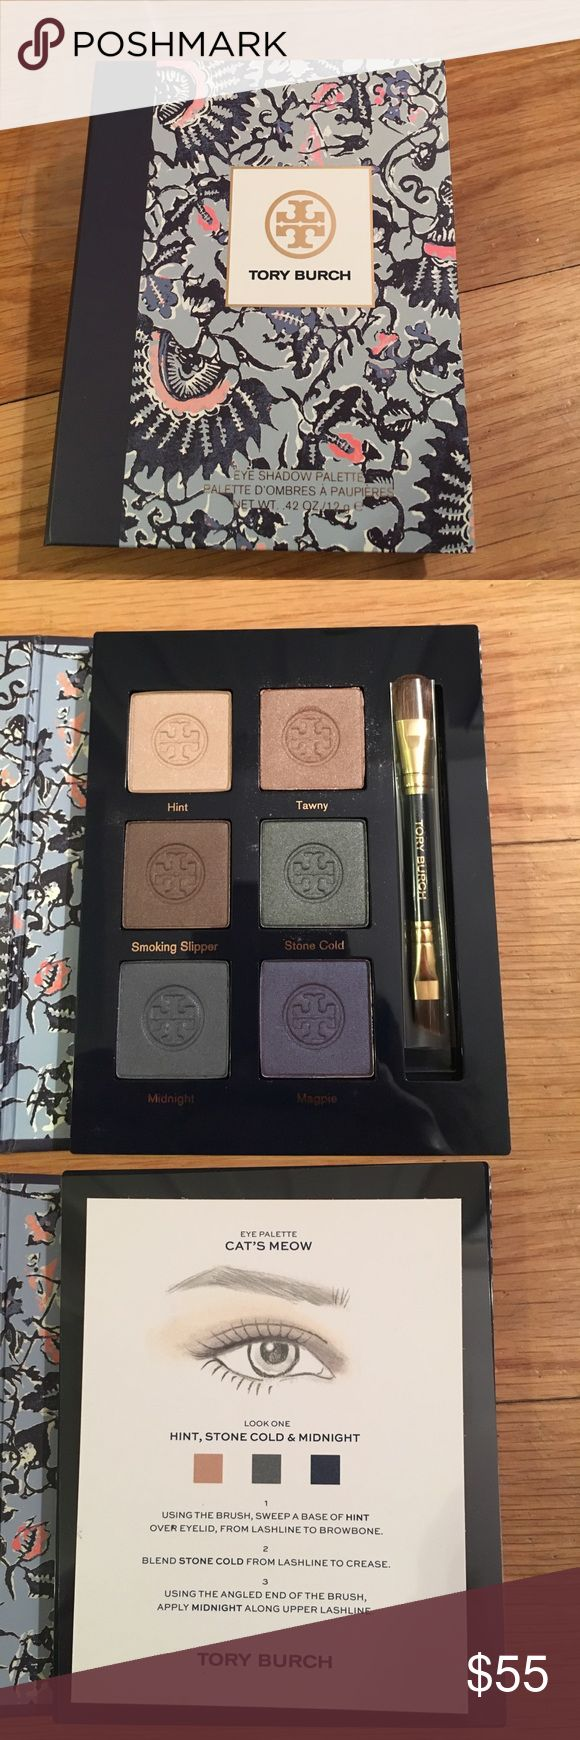 """Tory Butch """"The Cat's Meow"""" Eyeshadow Palette Brand new Tory Burch eyeshadow palette. The palette is called """"The Cat's Meow."""" Comes with the plastic sleeve, plastic protector over the eyeshadow, looks card, and mini Tory Burch dual ended eyeshadow brush. Never used. Tory Burch Makeup Eyeshadow"""